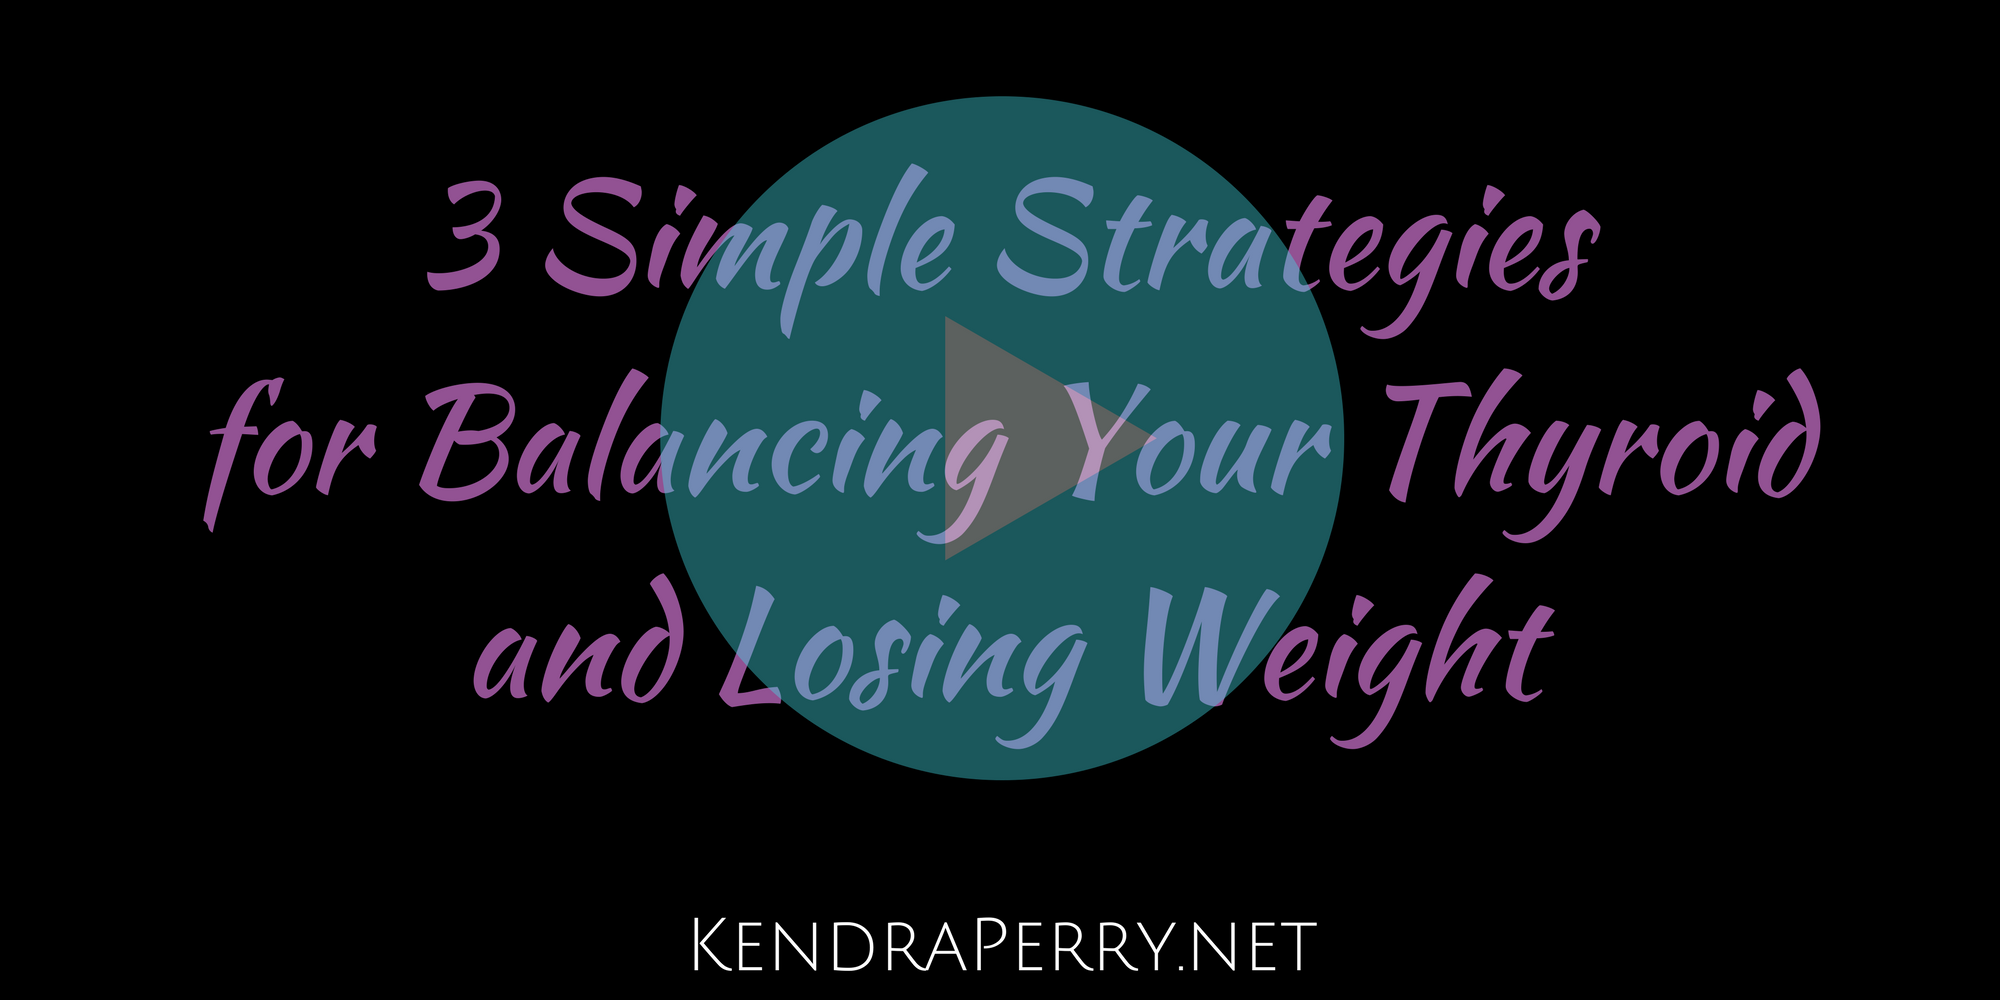 3 Simple Strategies for Balancing Your Thyroid and Losing Weight